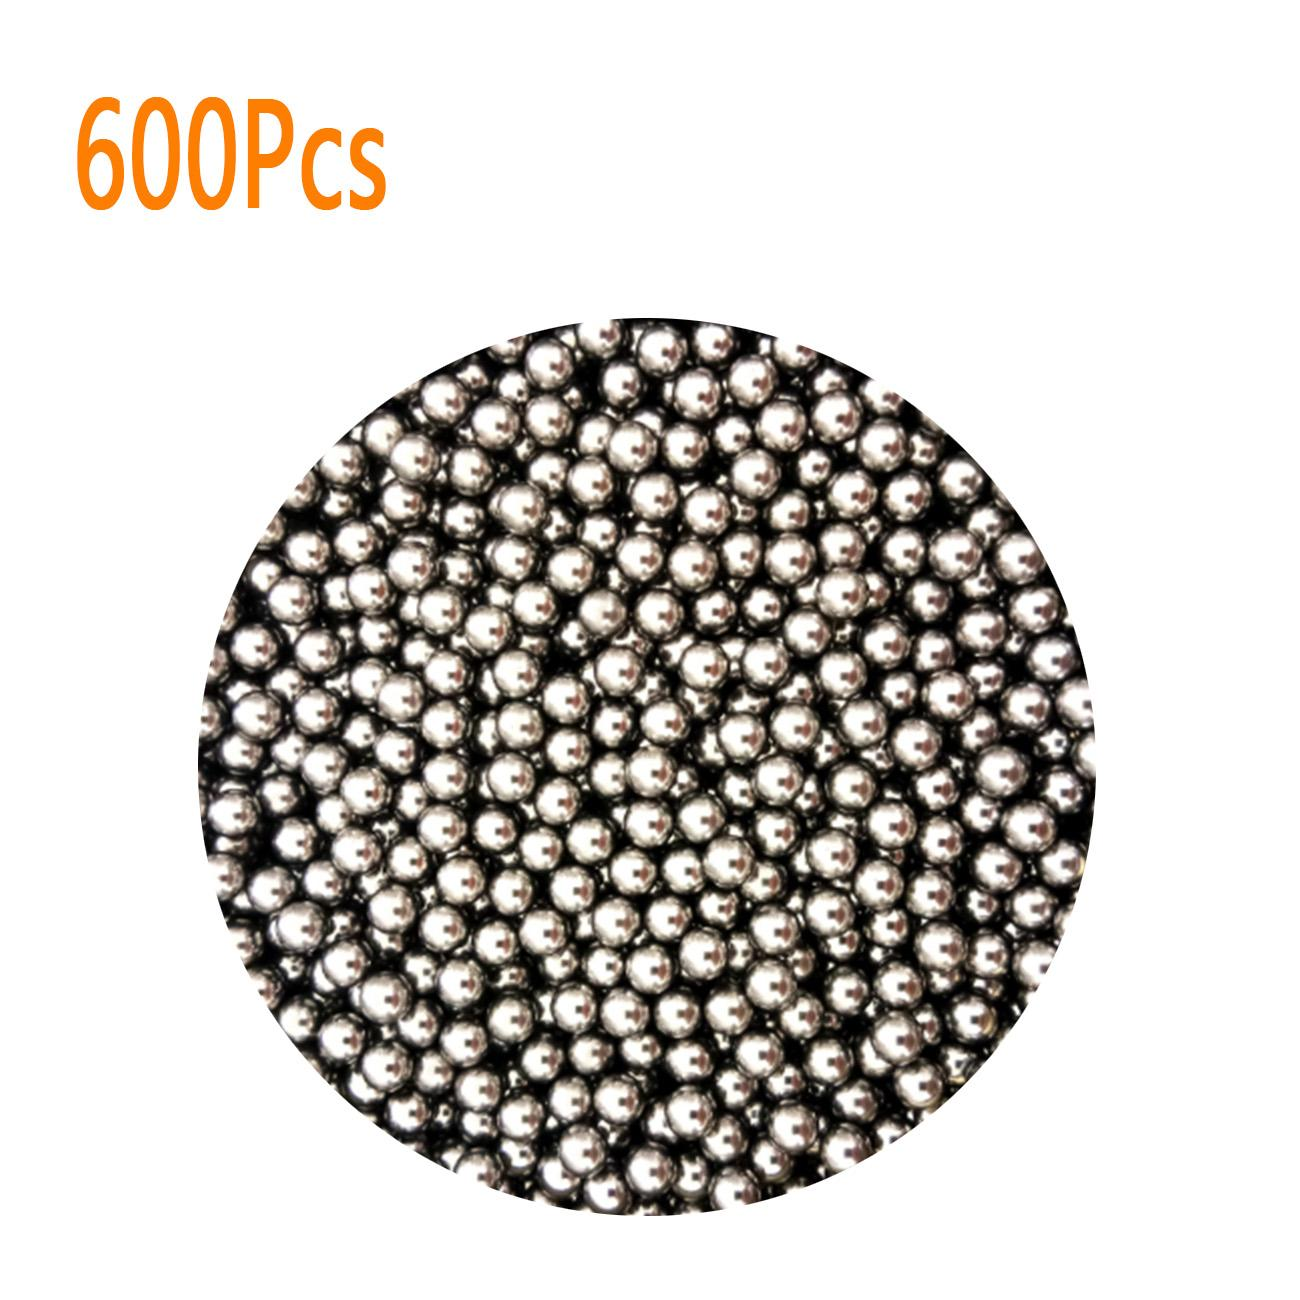 600x Steel Stainless Ammo Ball Hunting Catapult Slingshot Bearing Outdoor Game#